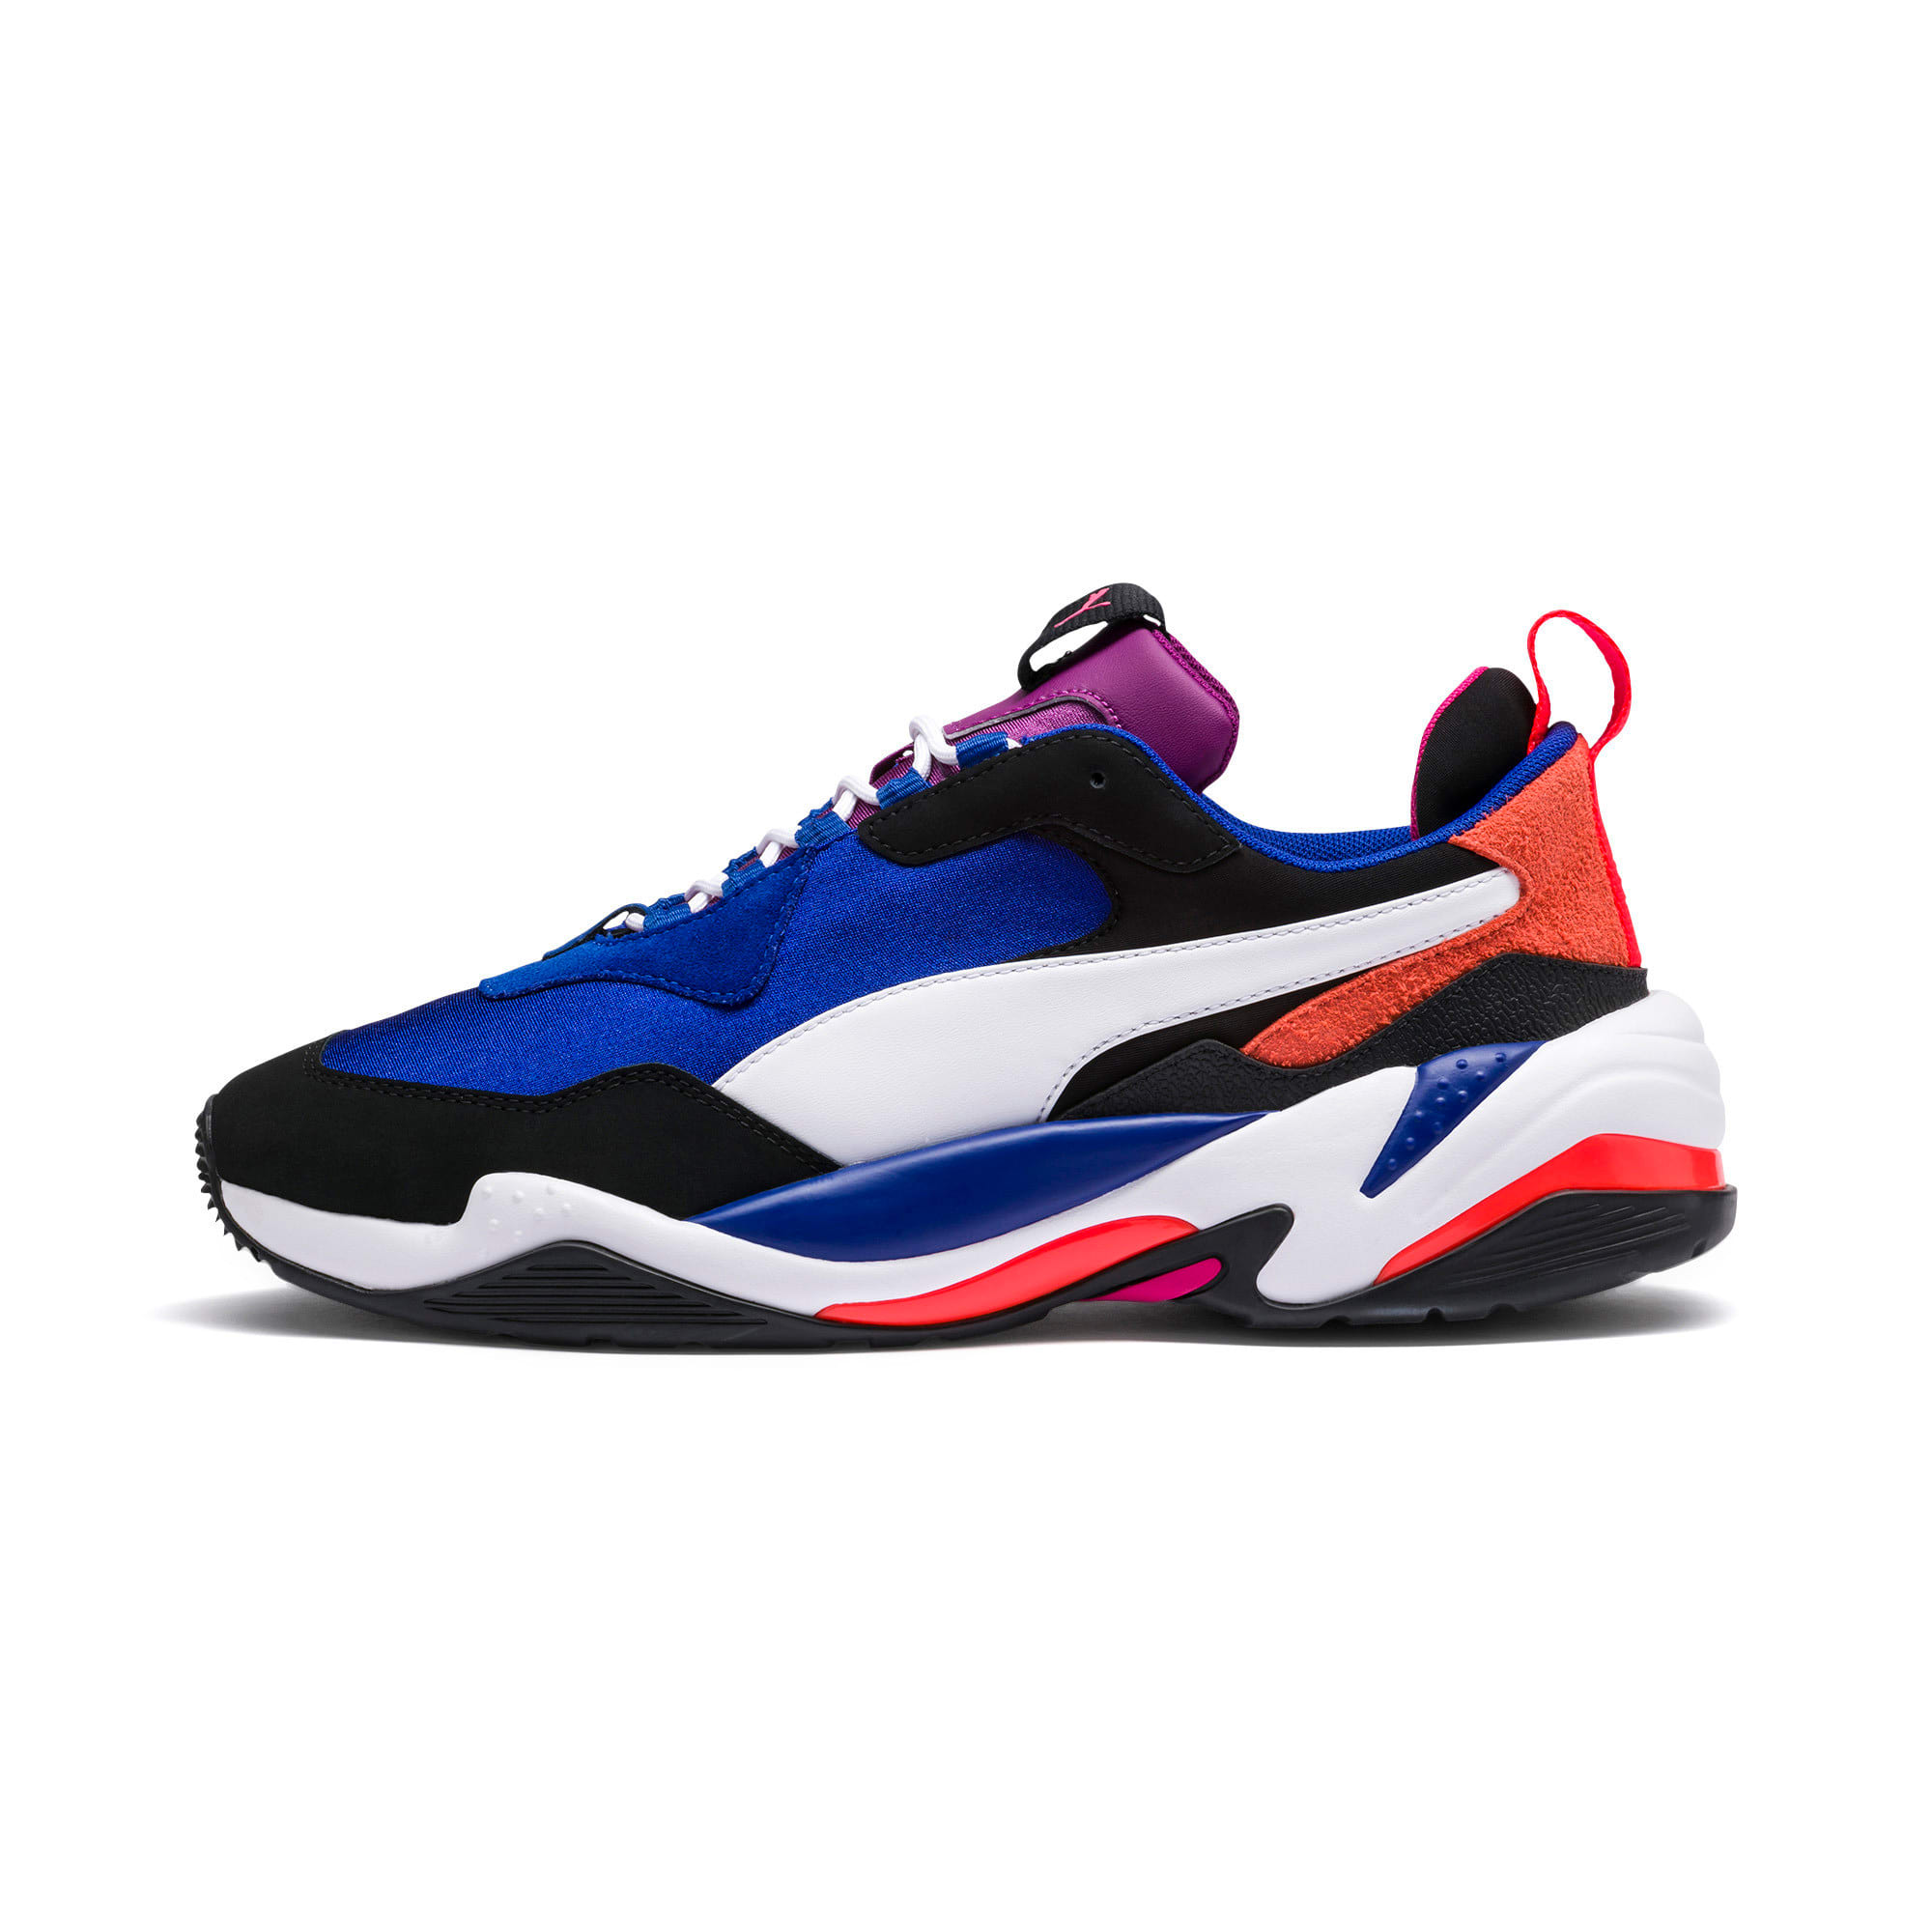 Puma Thunder 4 Life Sneakers in 369471_01